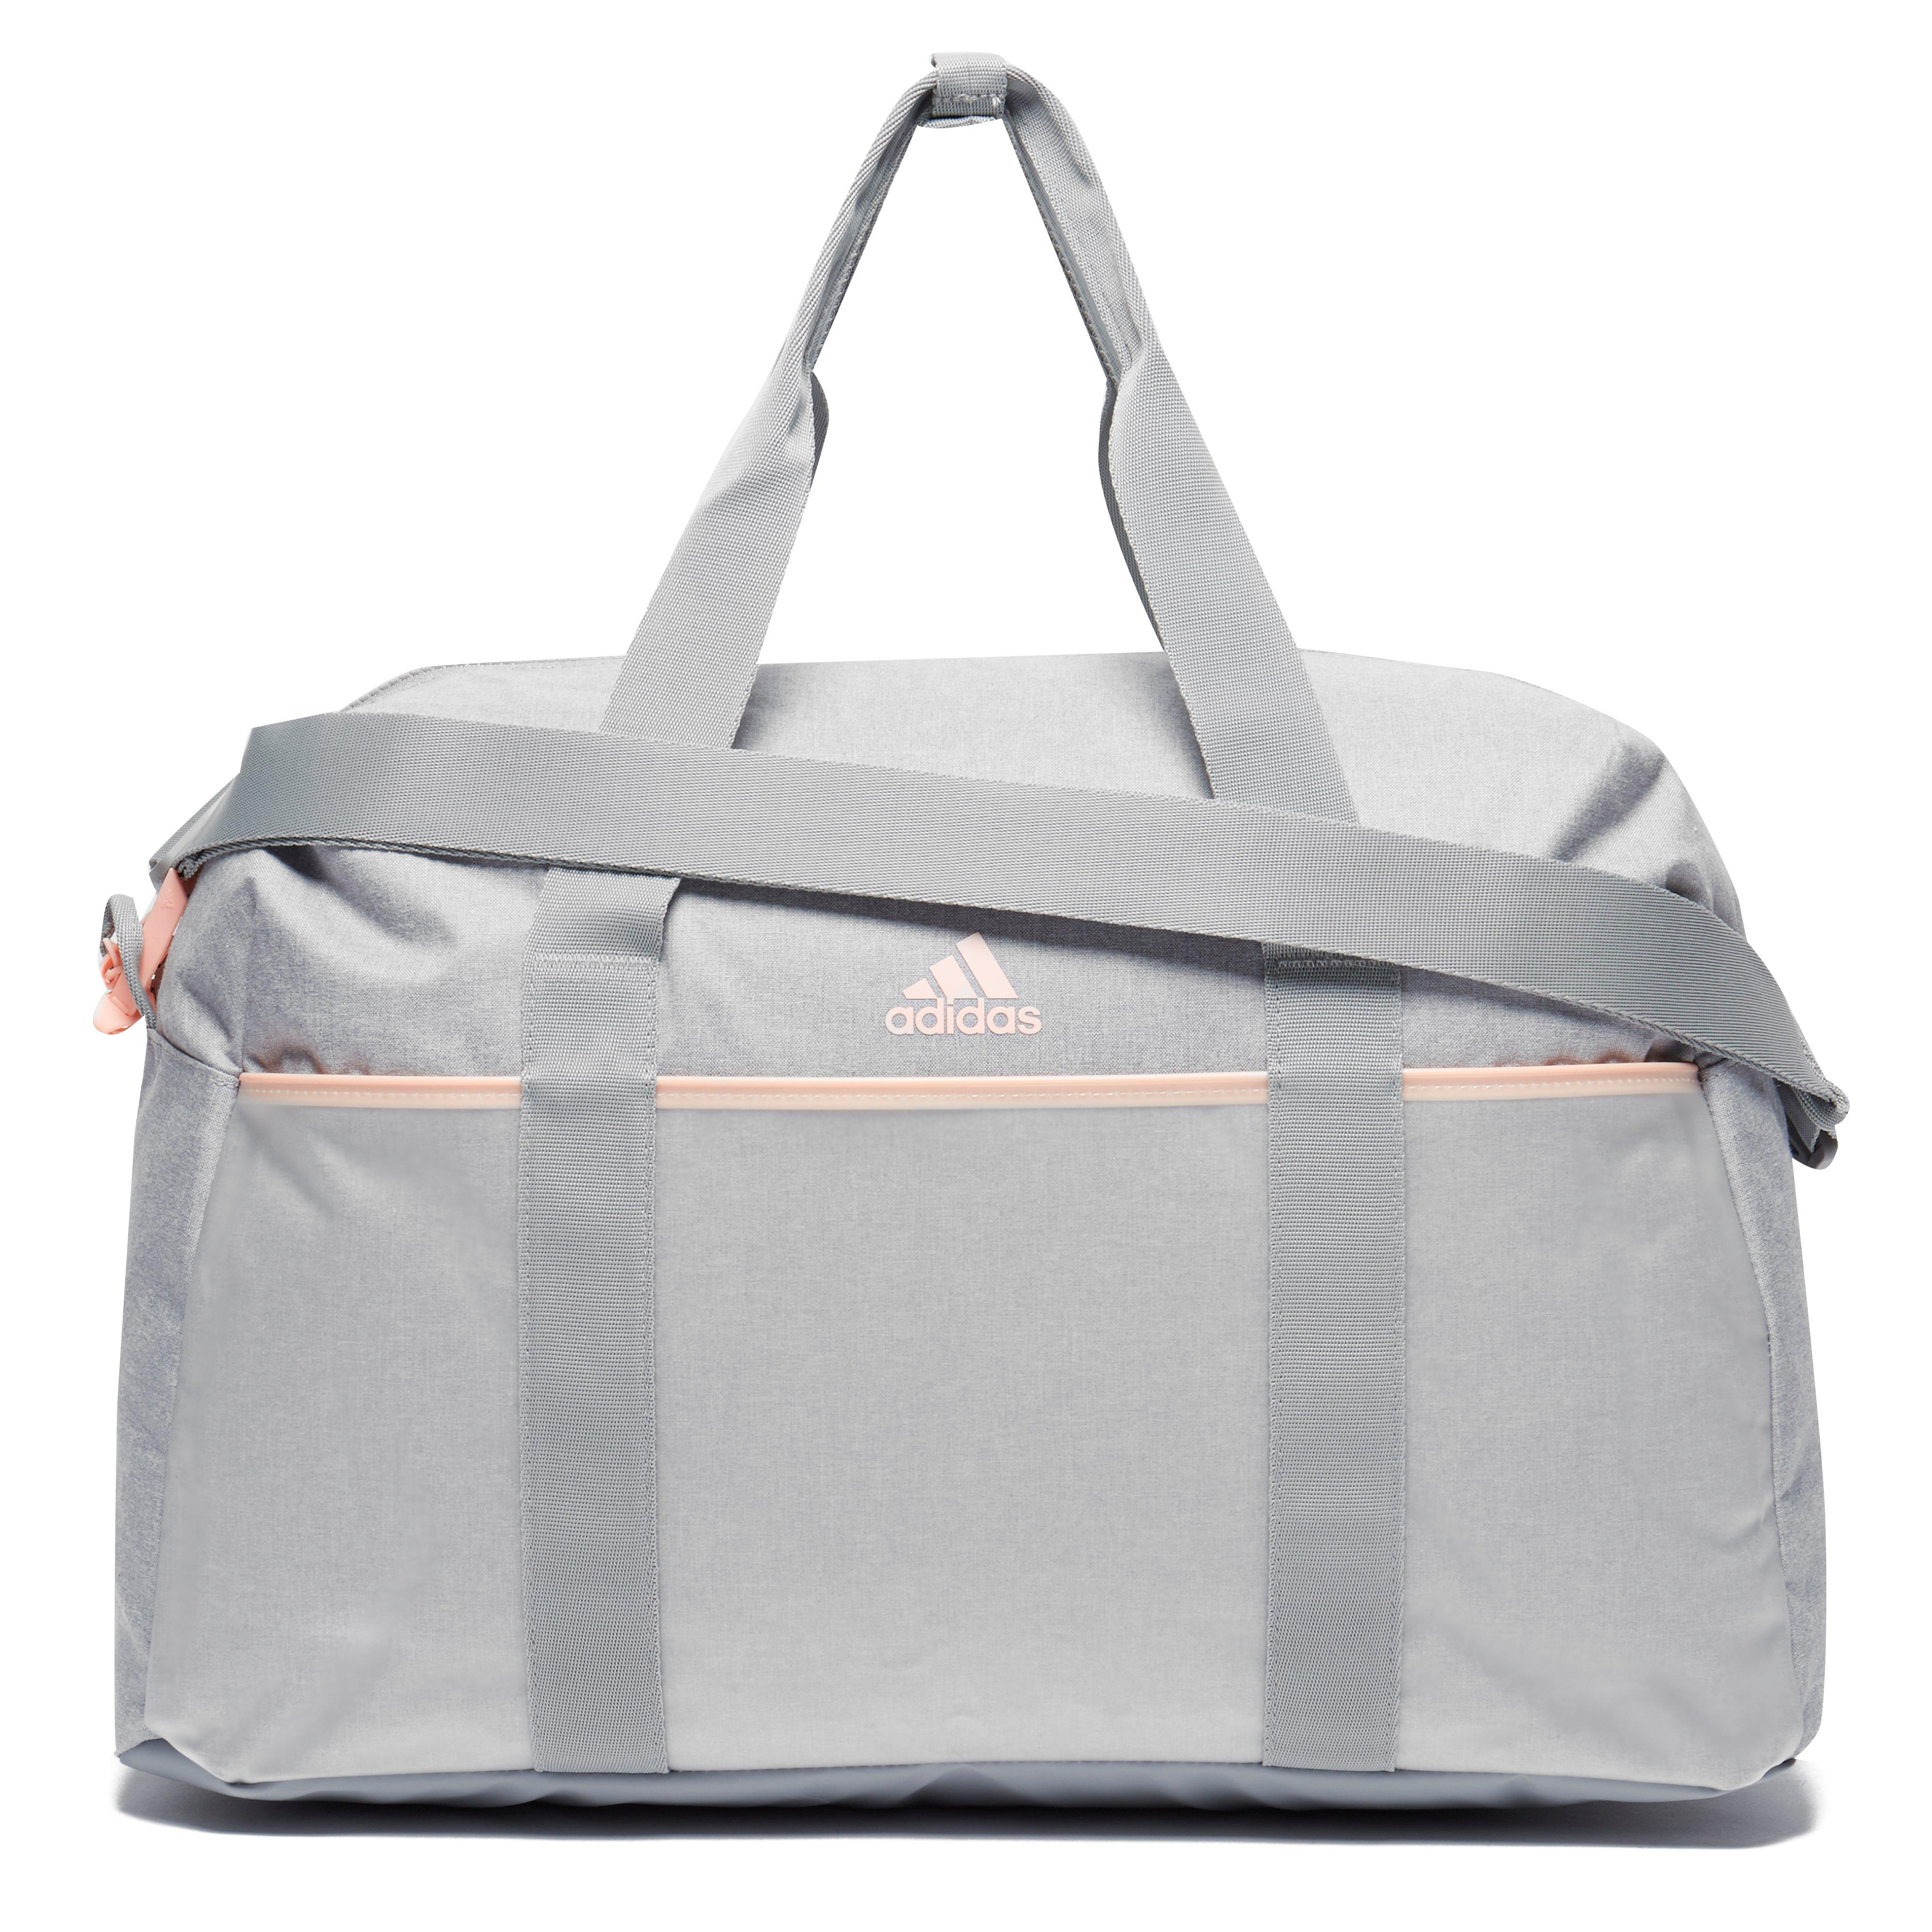 adidas ID Training Duffel Bag 4060507961347  672e454b4ea86